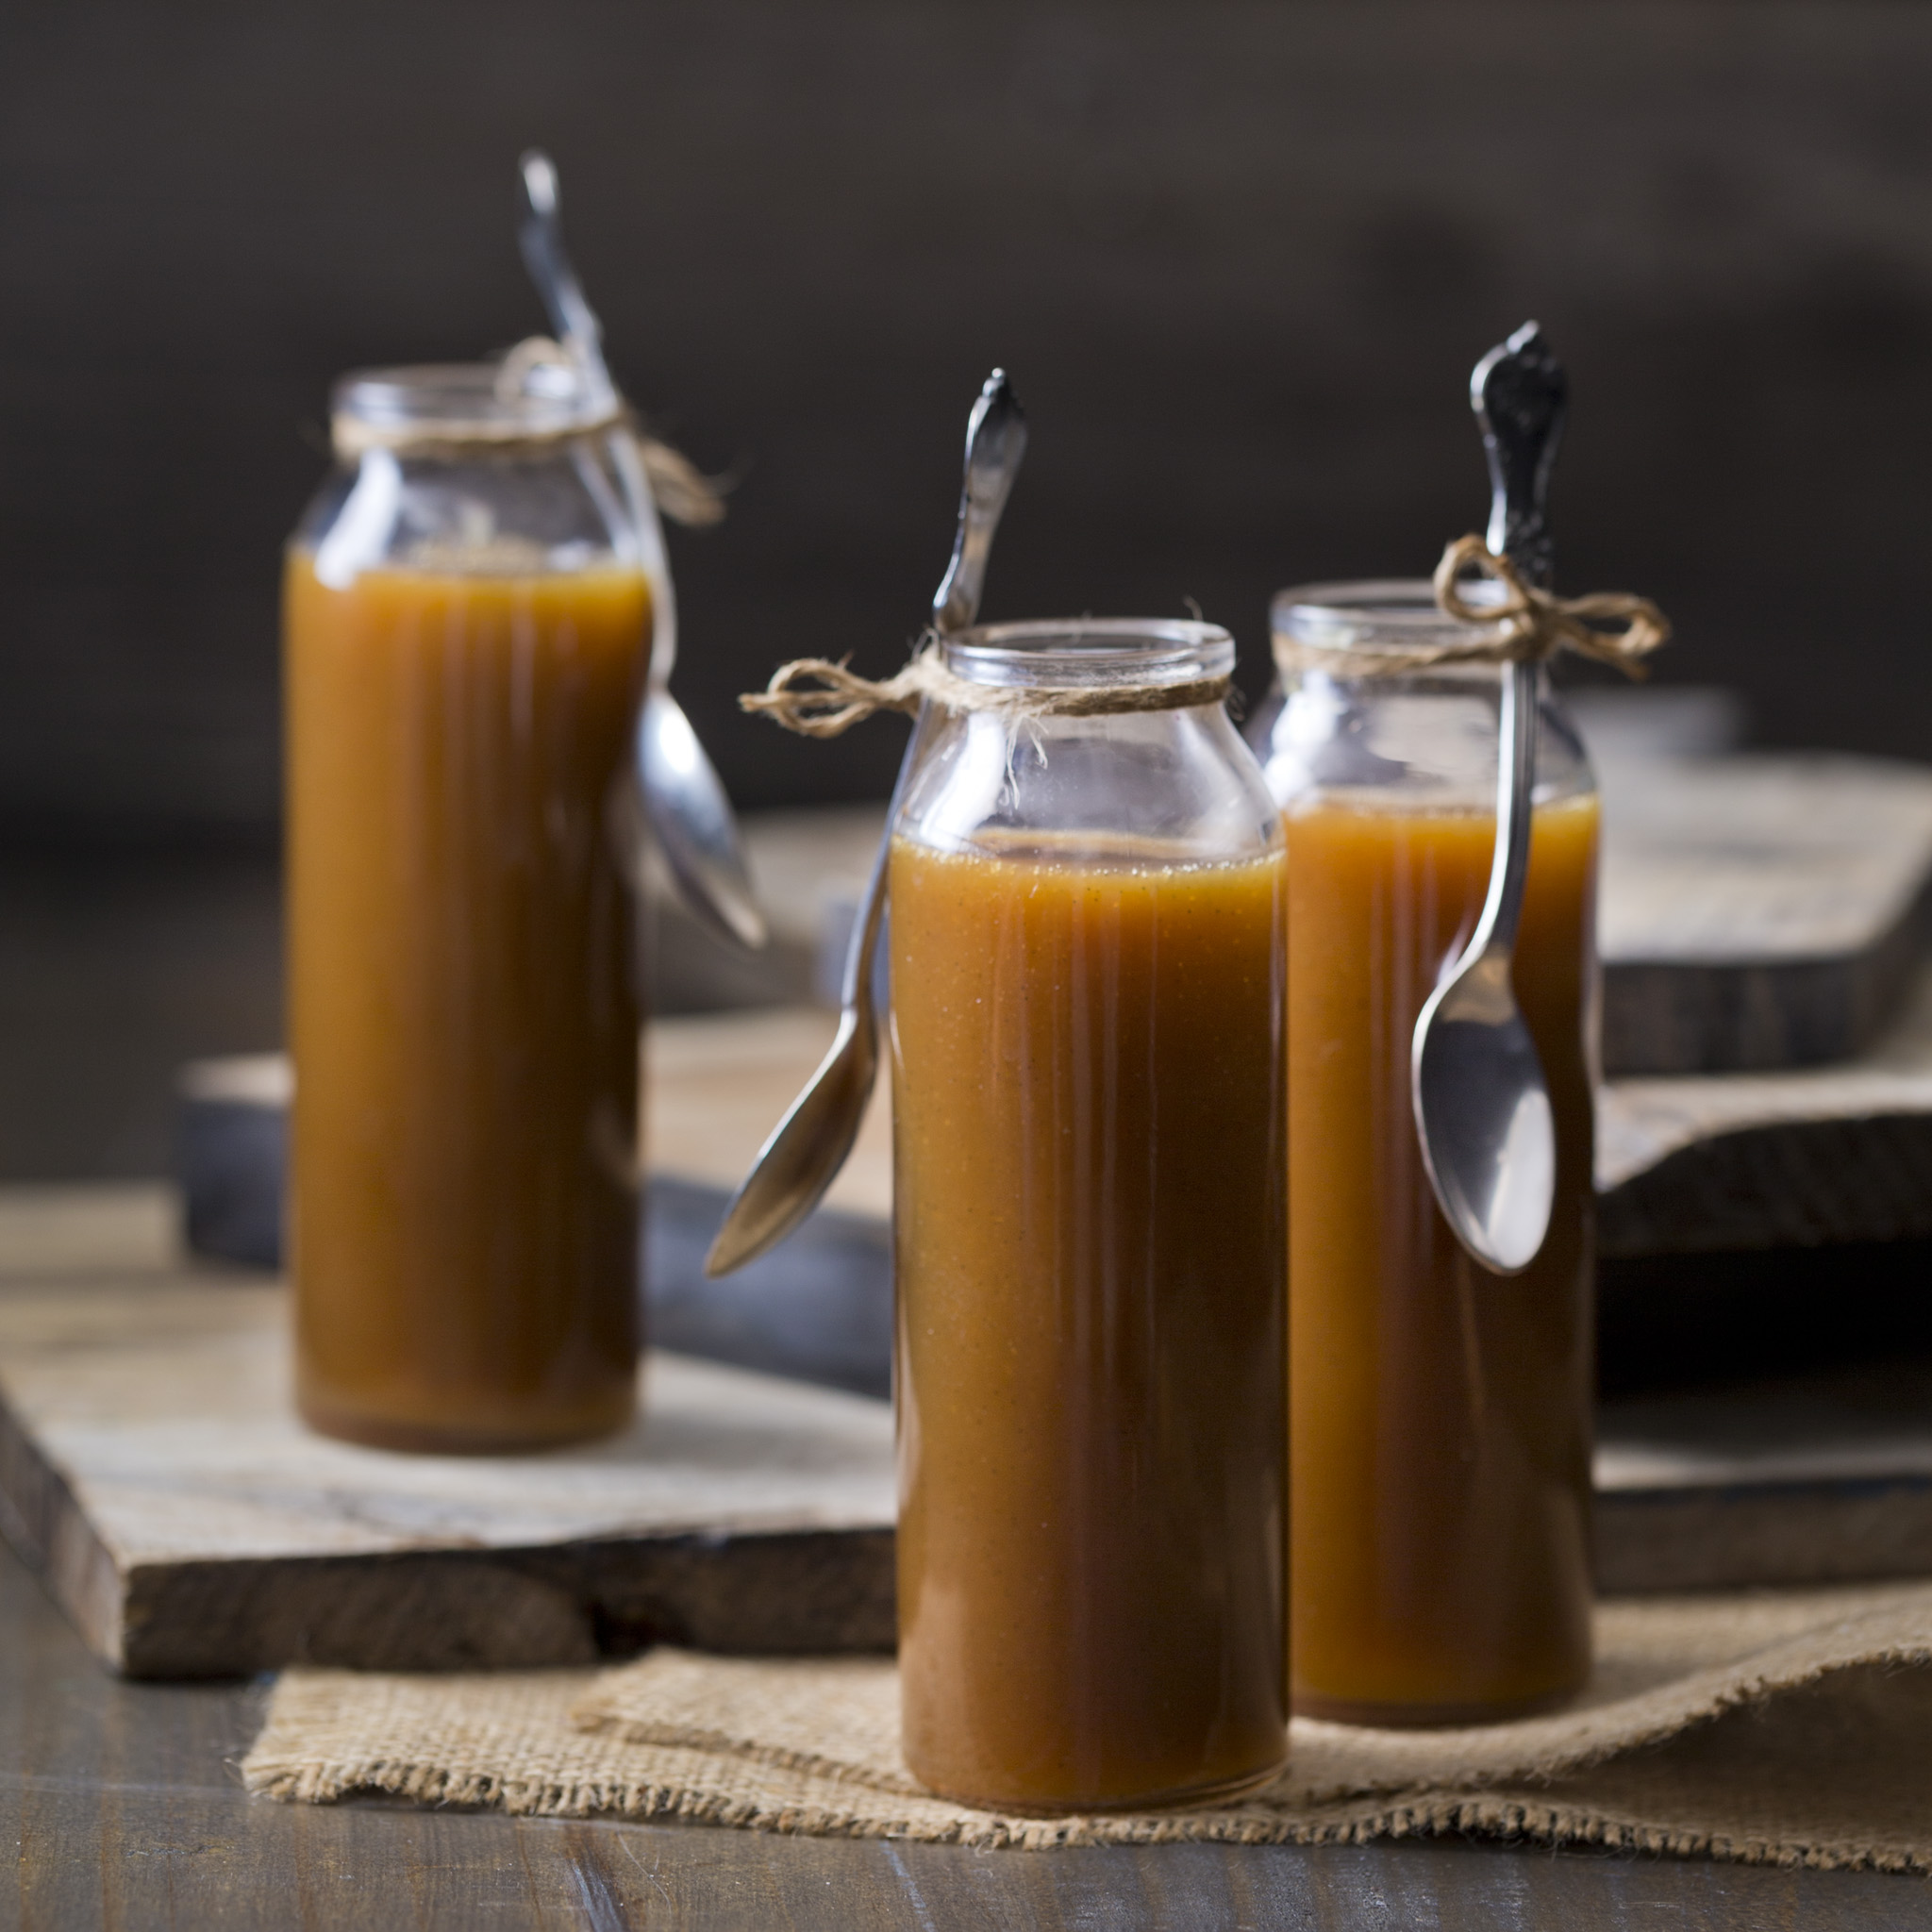 50 uses for salted caramel sauce